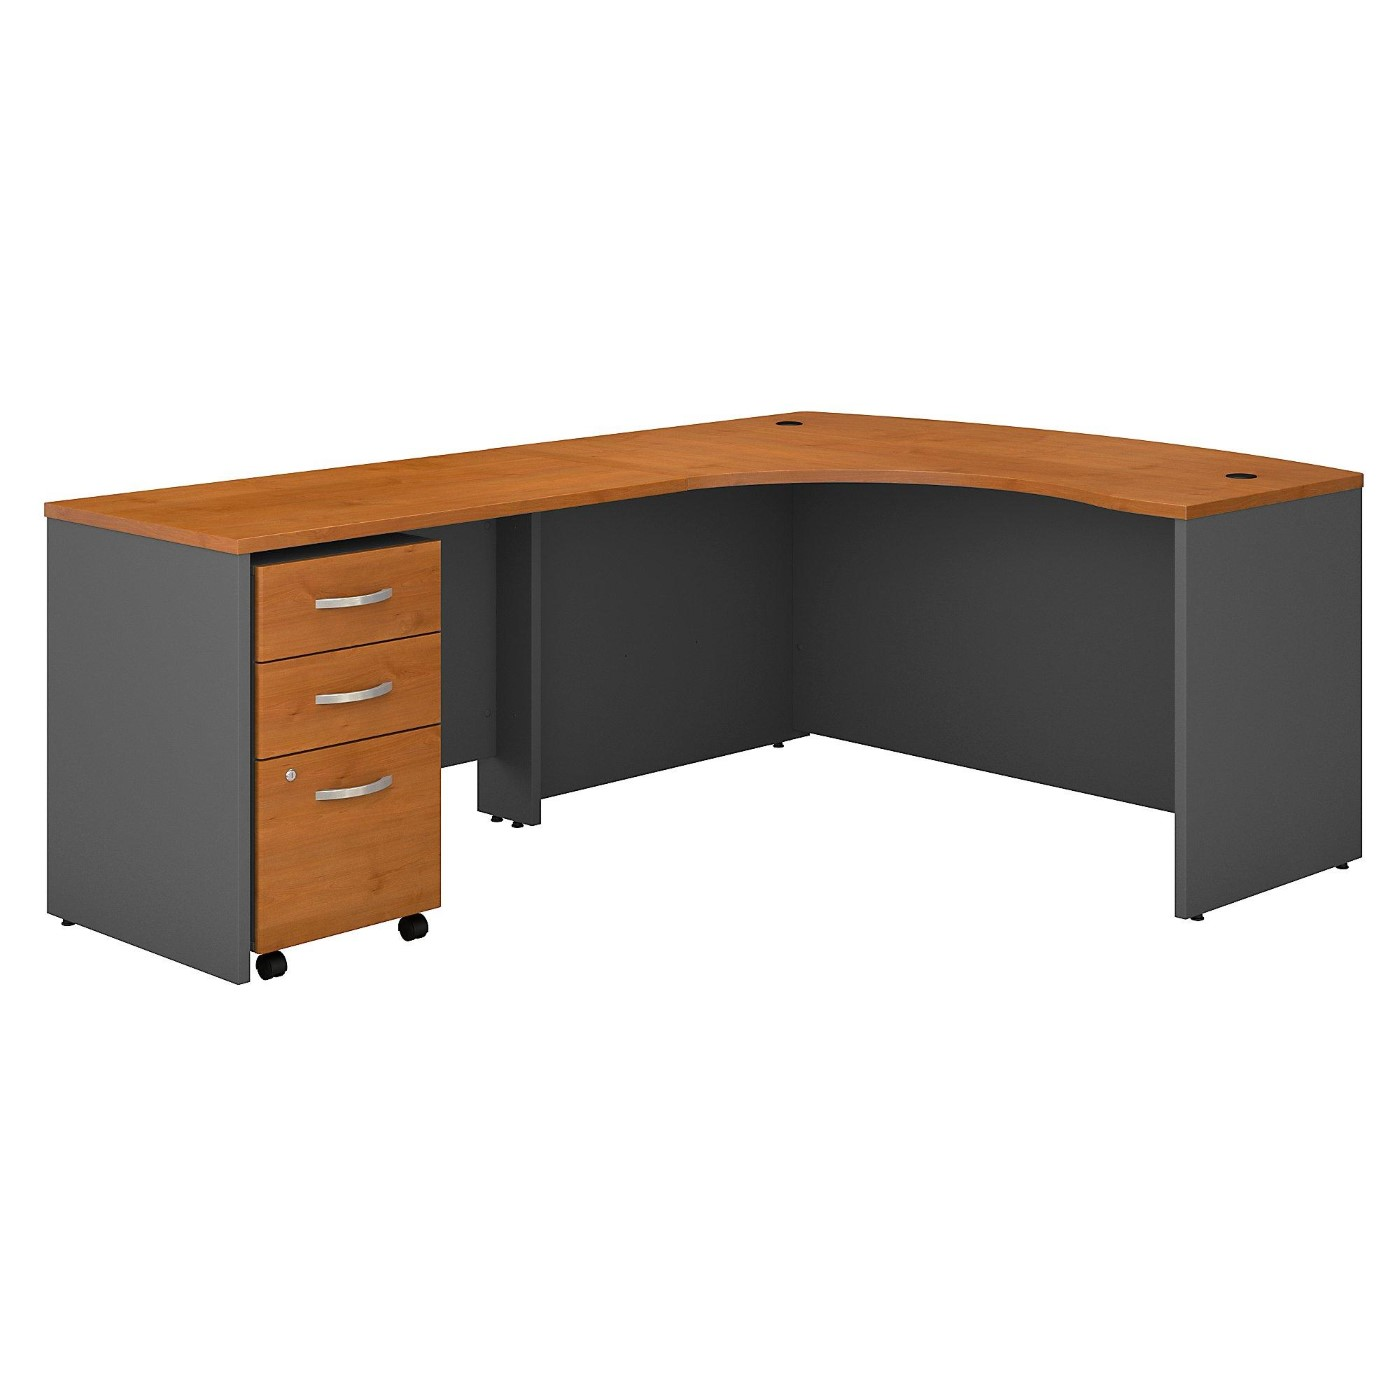 <font color=#c60><b>BUSH BUSINESS FURNITURE SERIES C RIGHT HANDED L SHAPED DESK WITH MOBILE FILE CABINET. FREE SHIPPING</font></b>